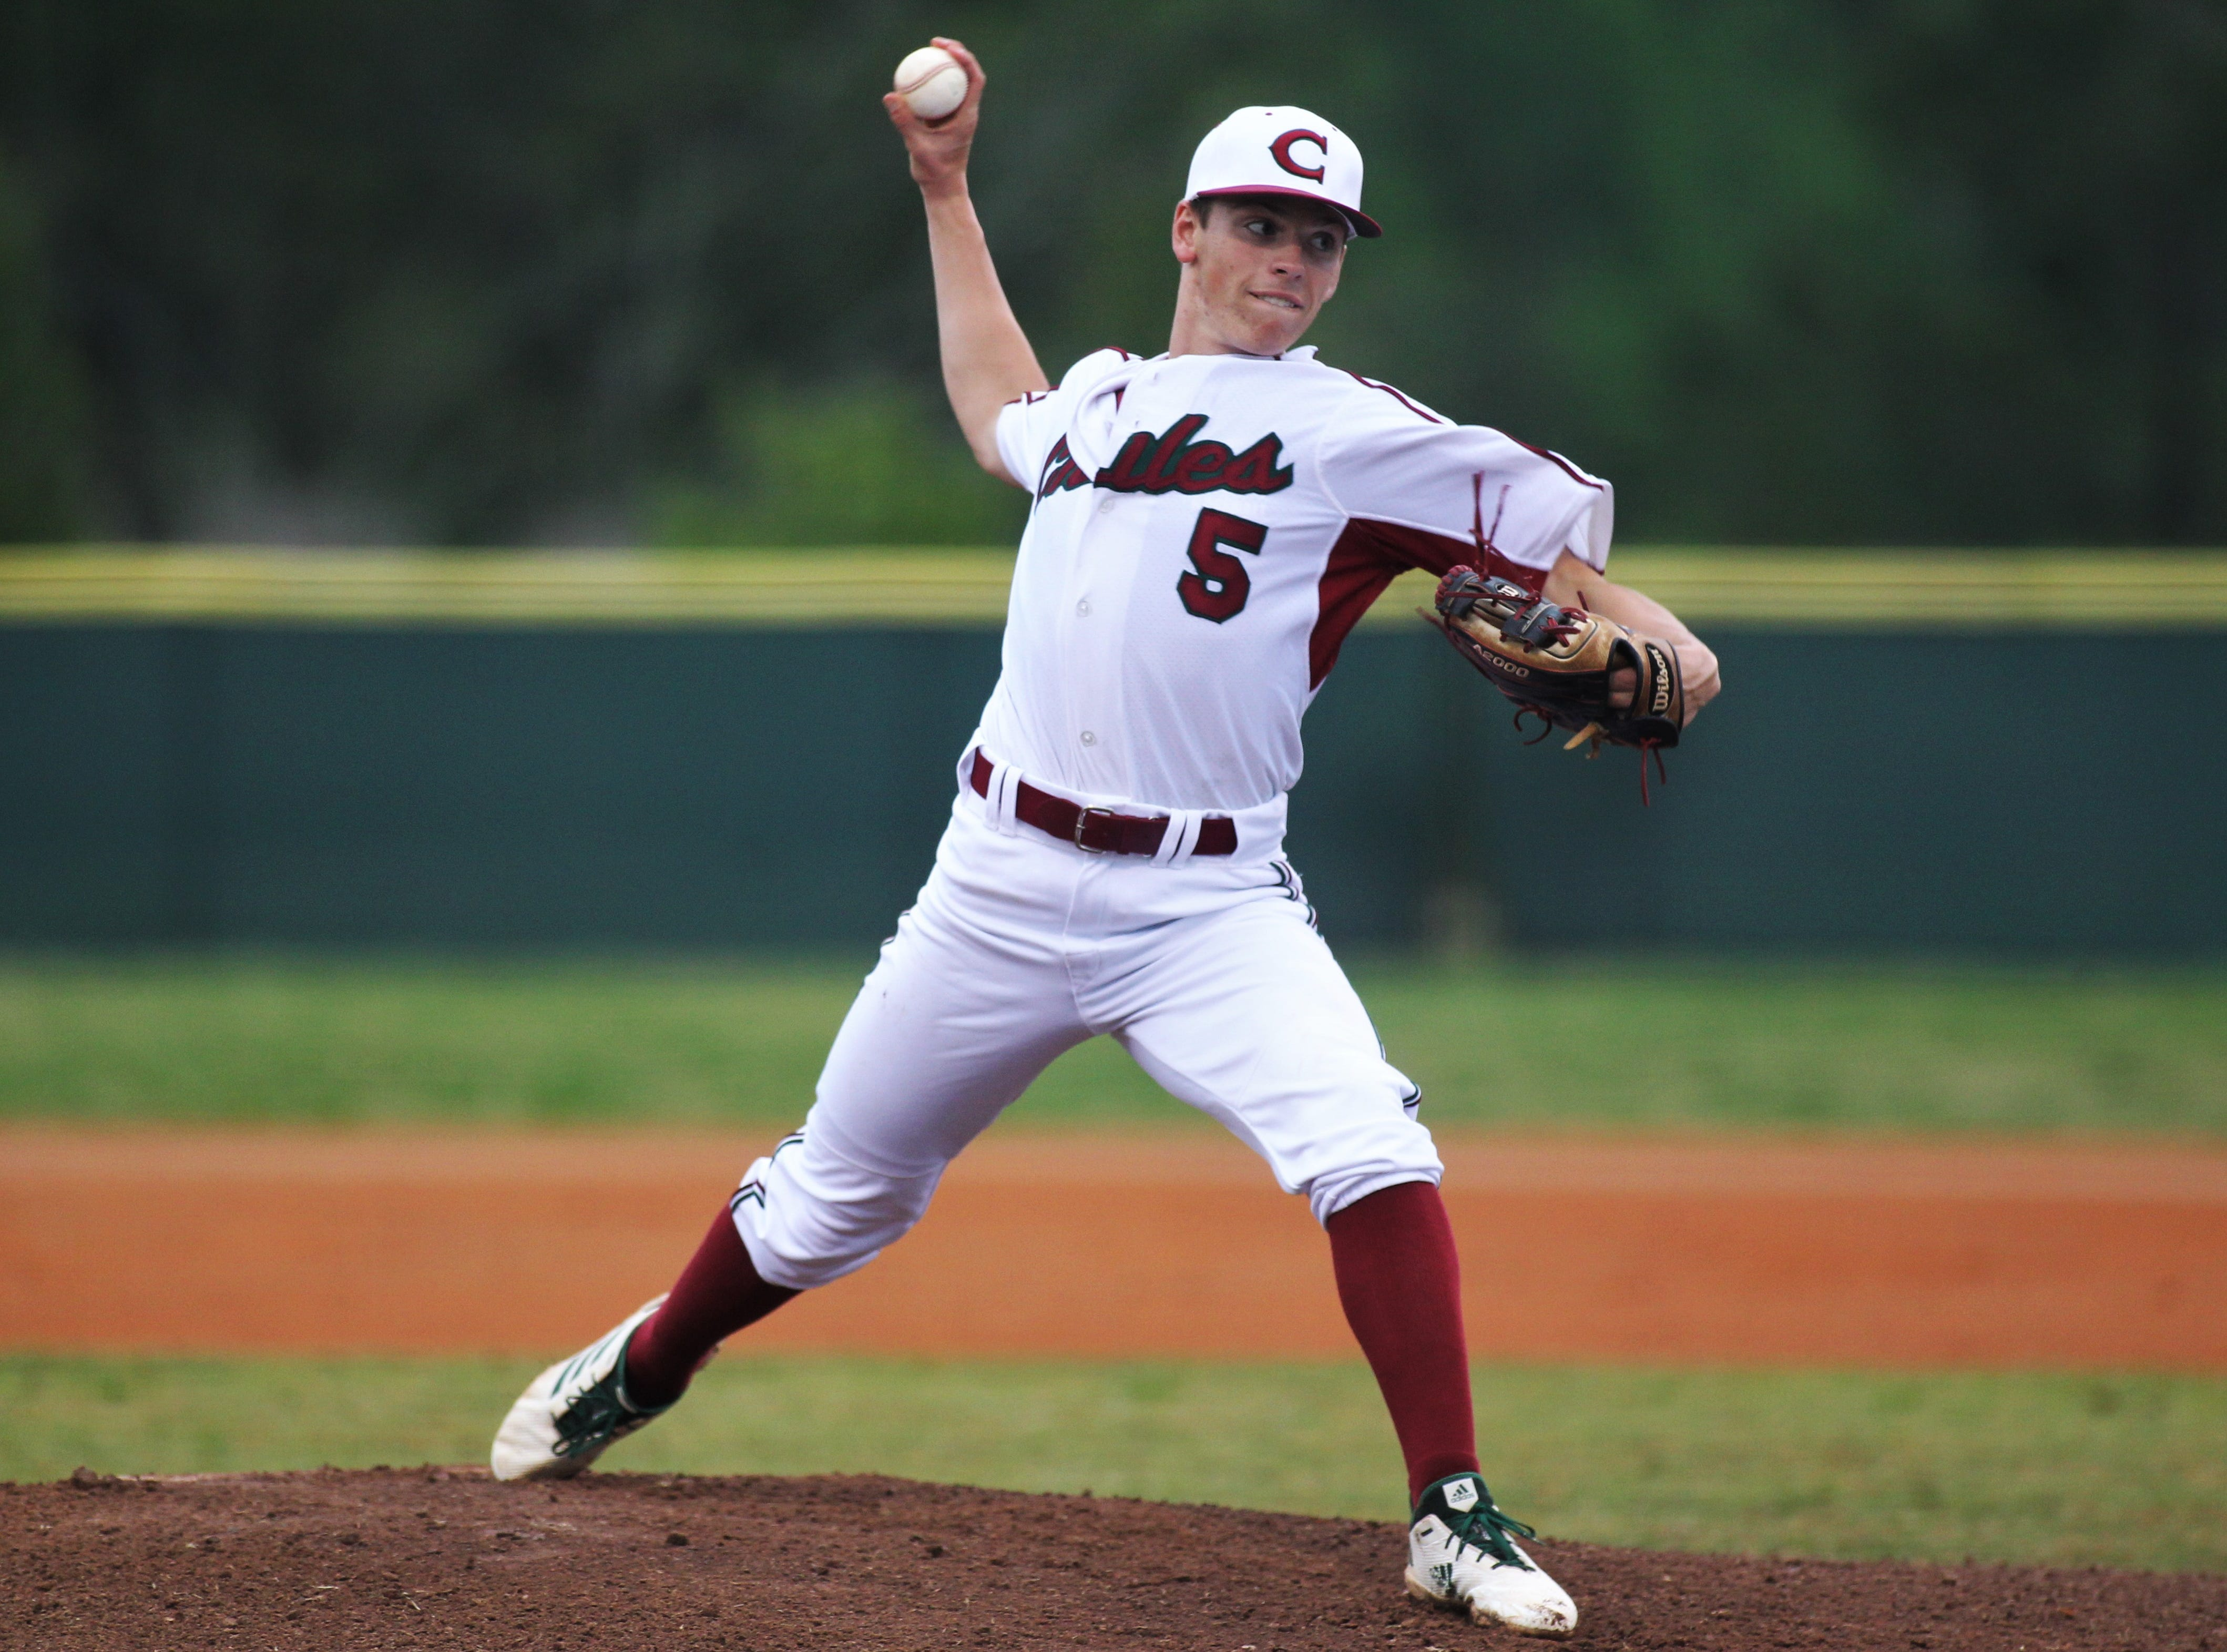 Chiles senior Ben Gurley pitches as Chiles won an 11-6 home game against Leon on Friday, April 5, 2019, to force a season split. The Lions won 3-0 earlier in the week.